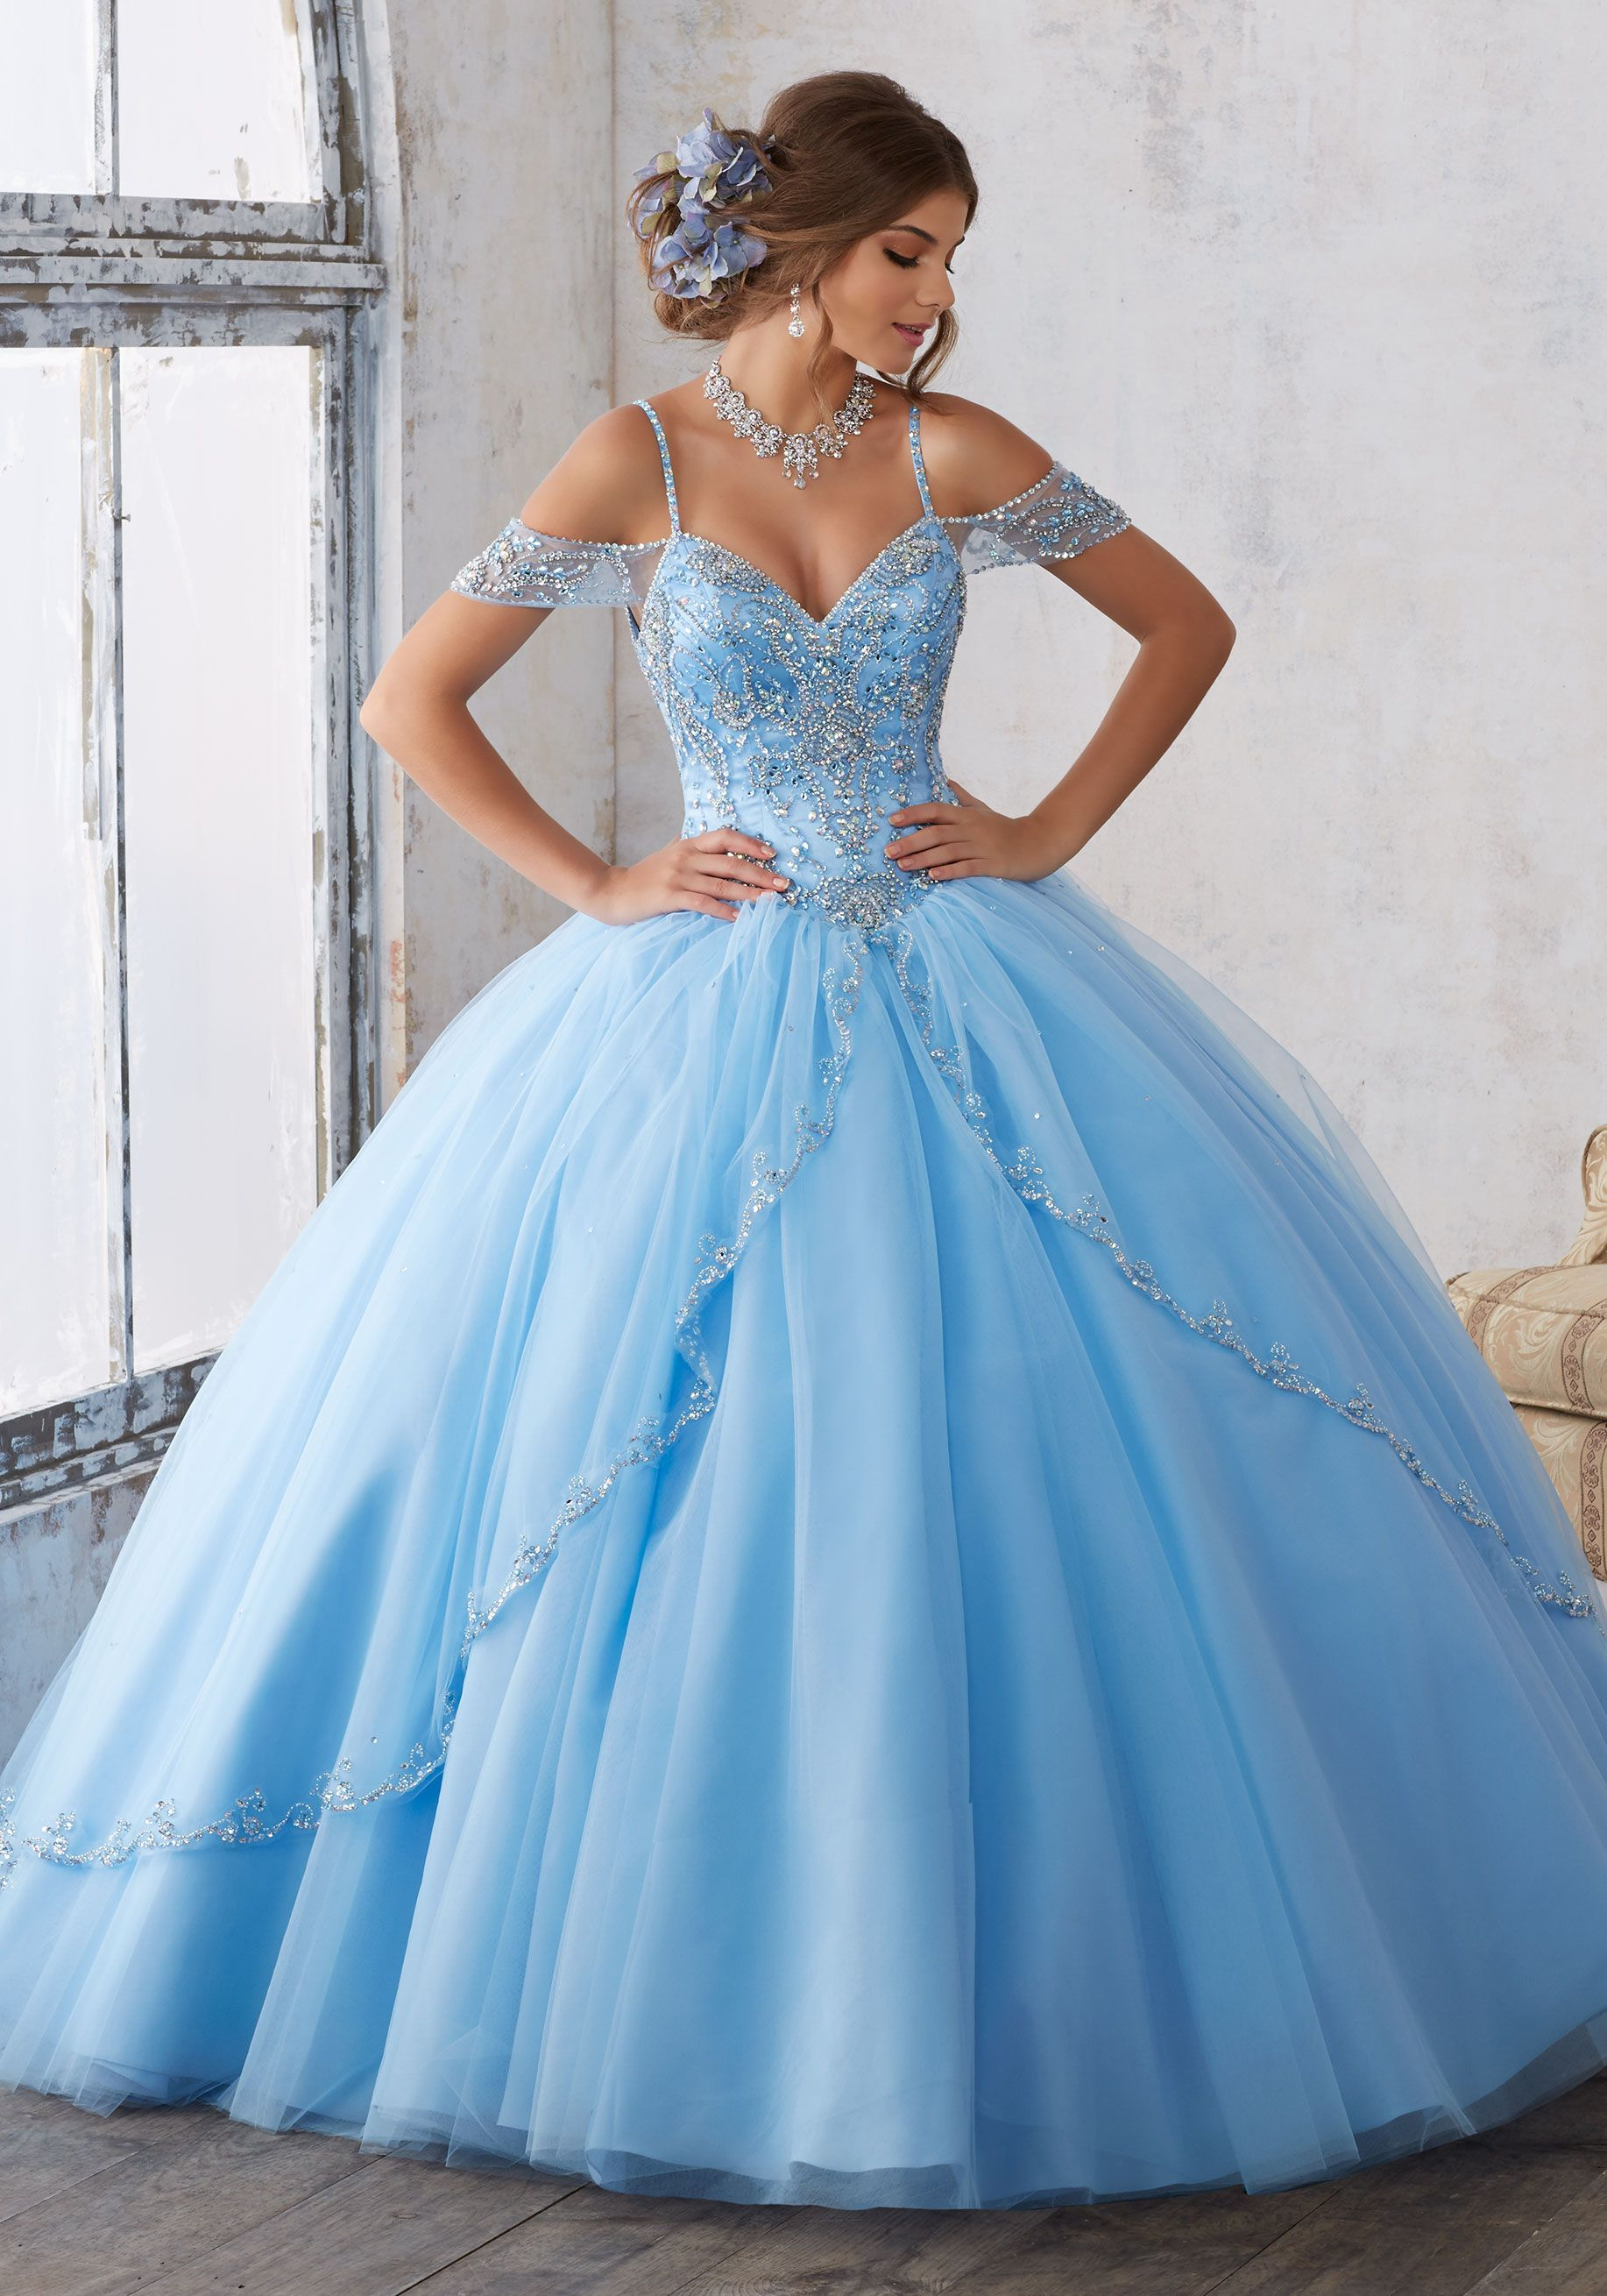 Hermoso vestido color celeste | Alondra | Pinterest | Hermosa, Color ...